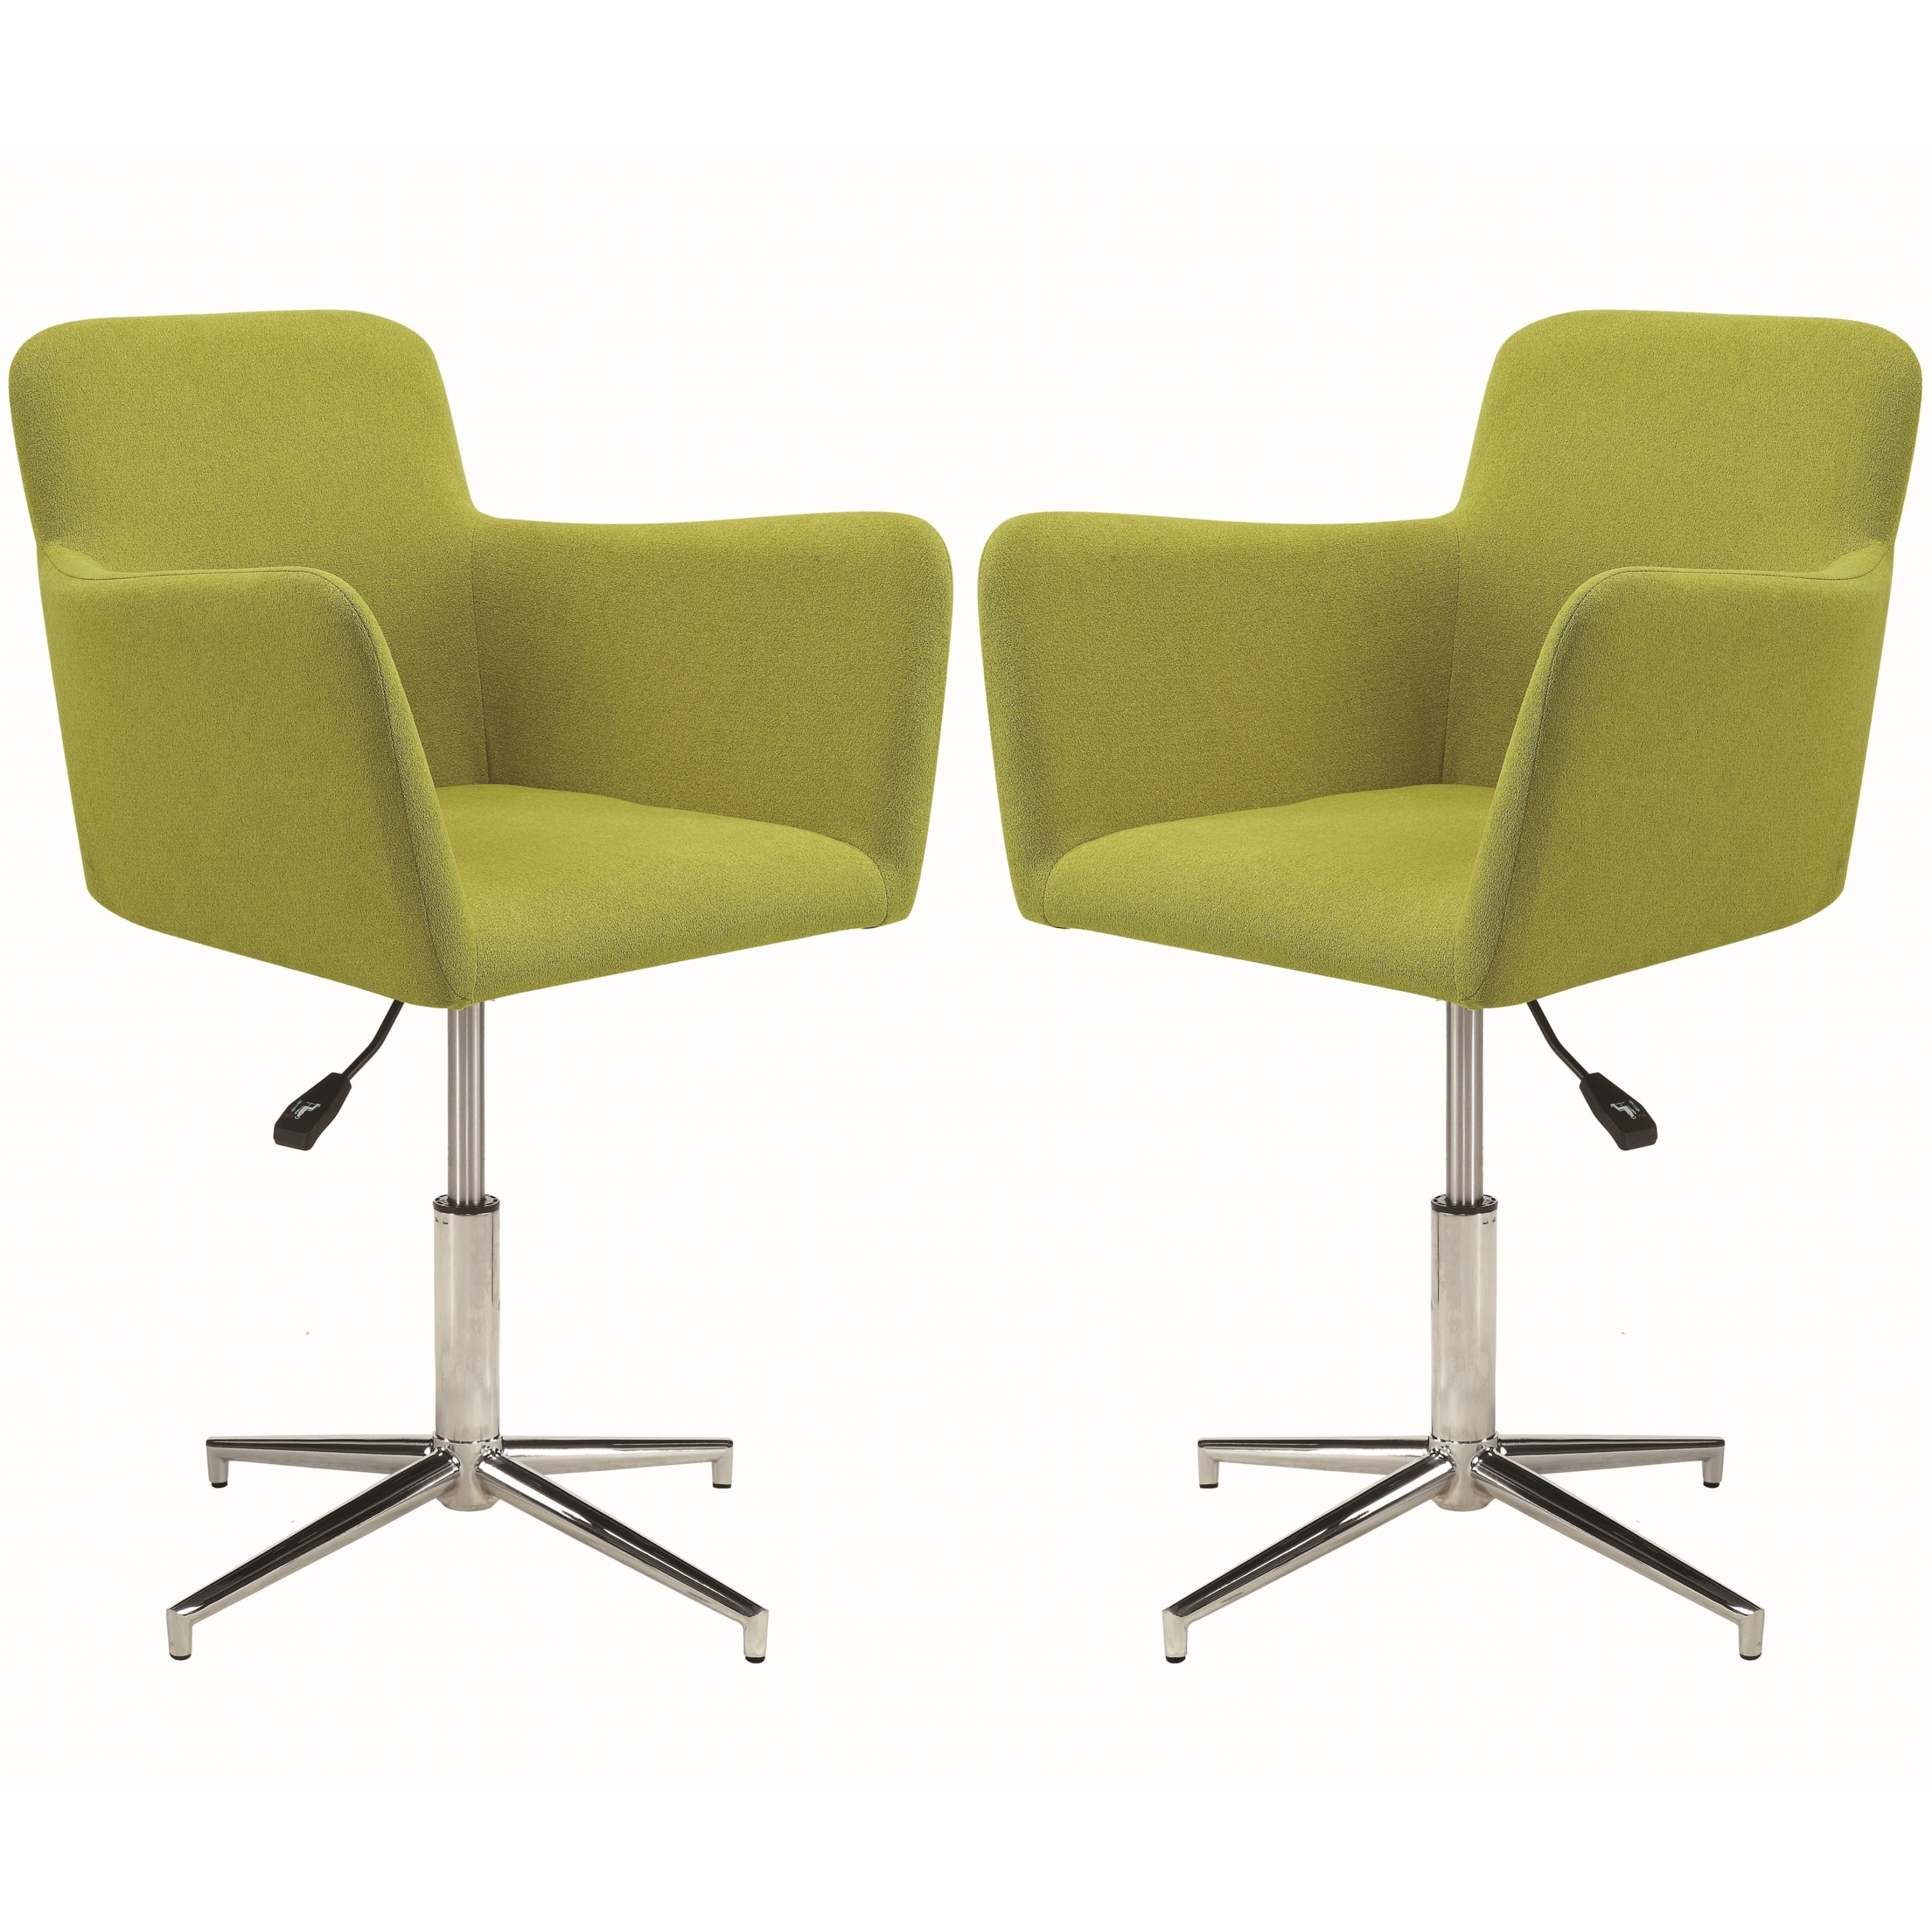 Attirant Shop Casual Retro Style Adjustable Height Green Dining Arm Chairs (Set Of  2)   Free Shipping Today   Overstock   21369090